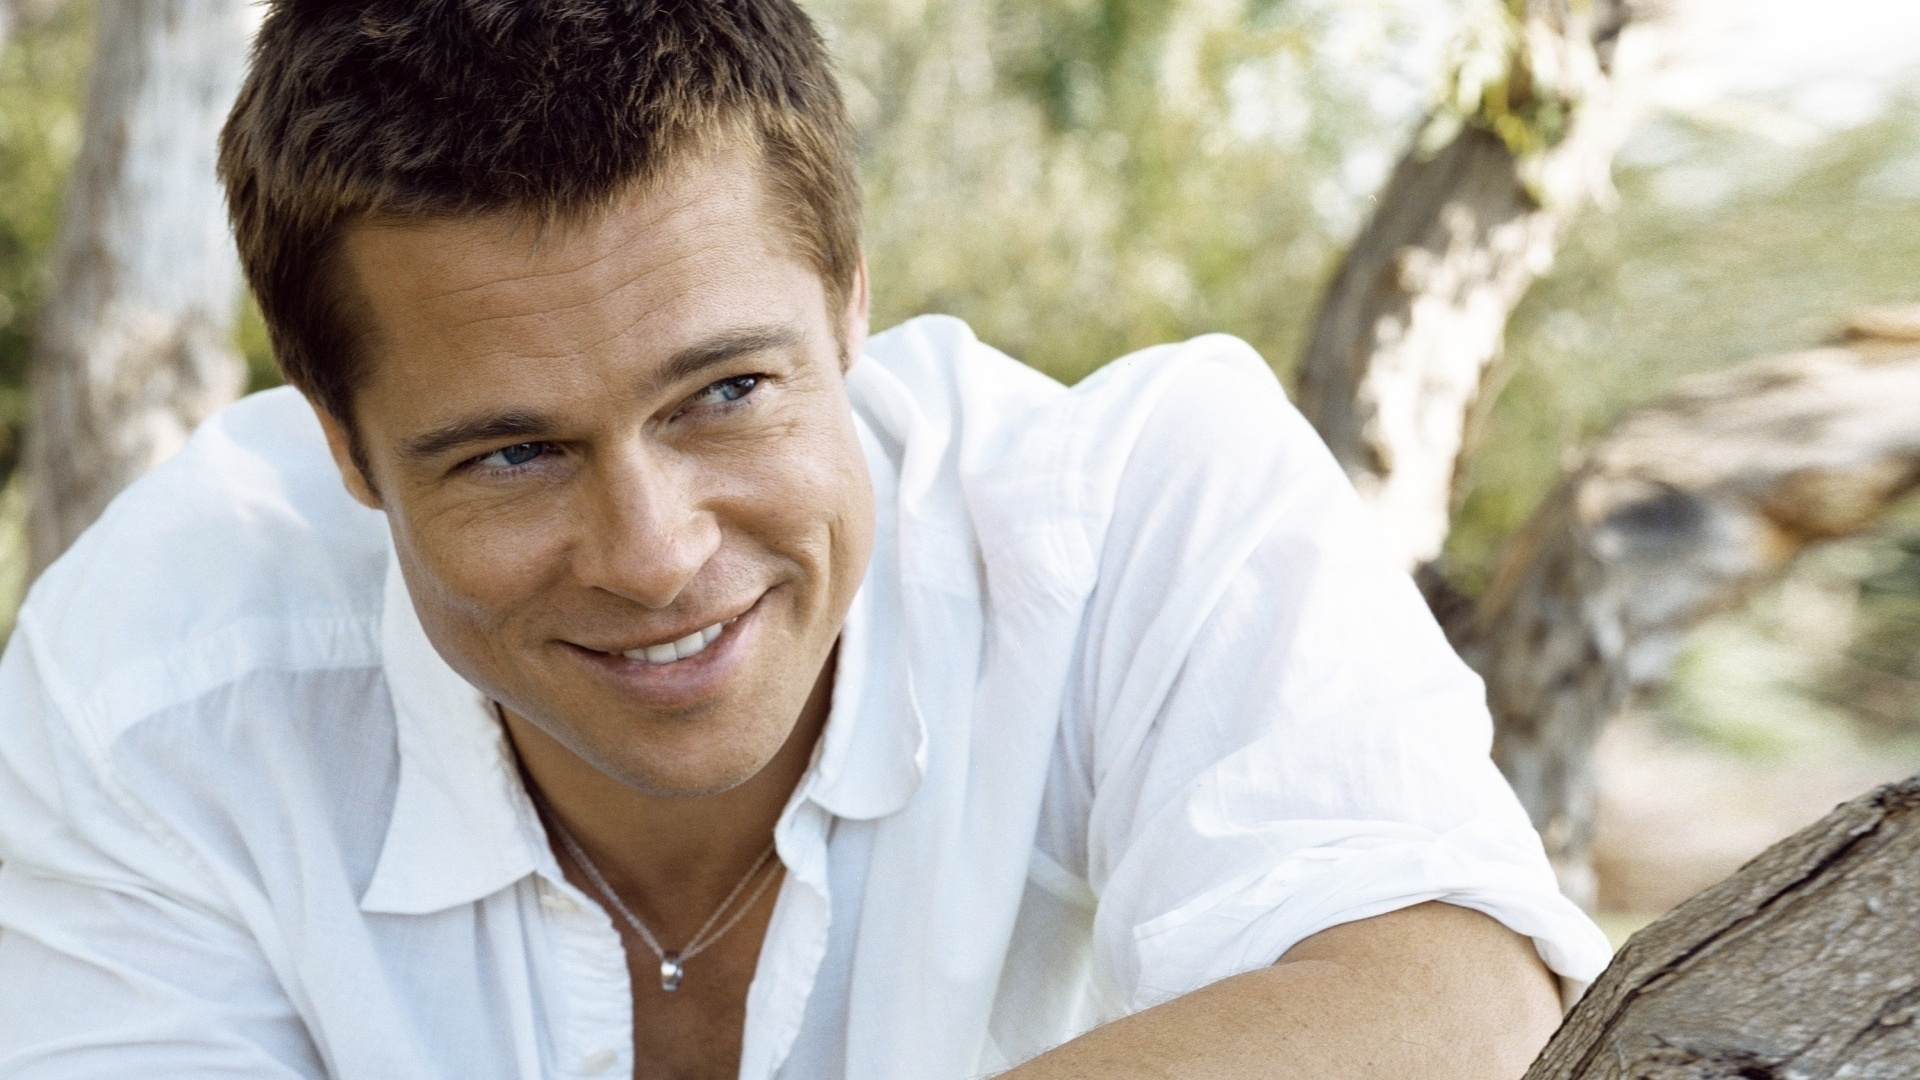 Brad Pitt Hd Background Wallpaper 27